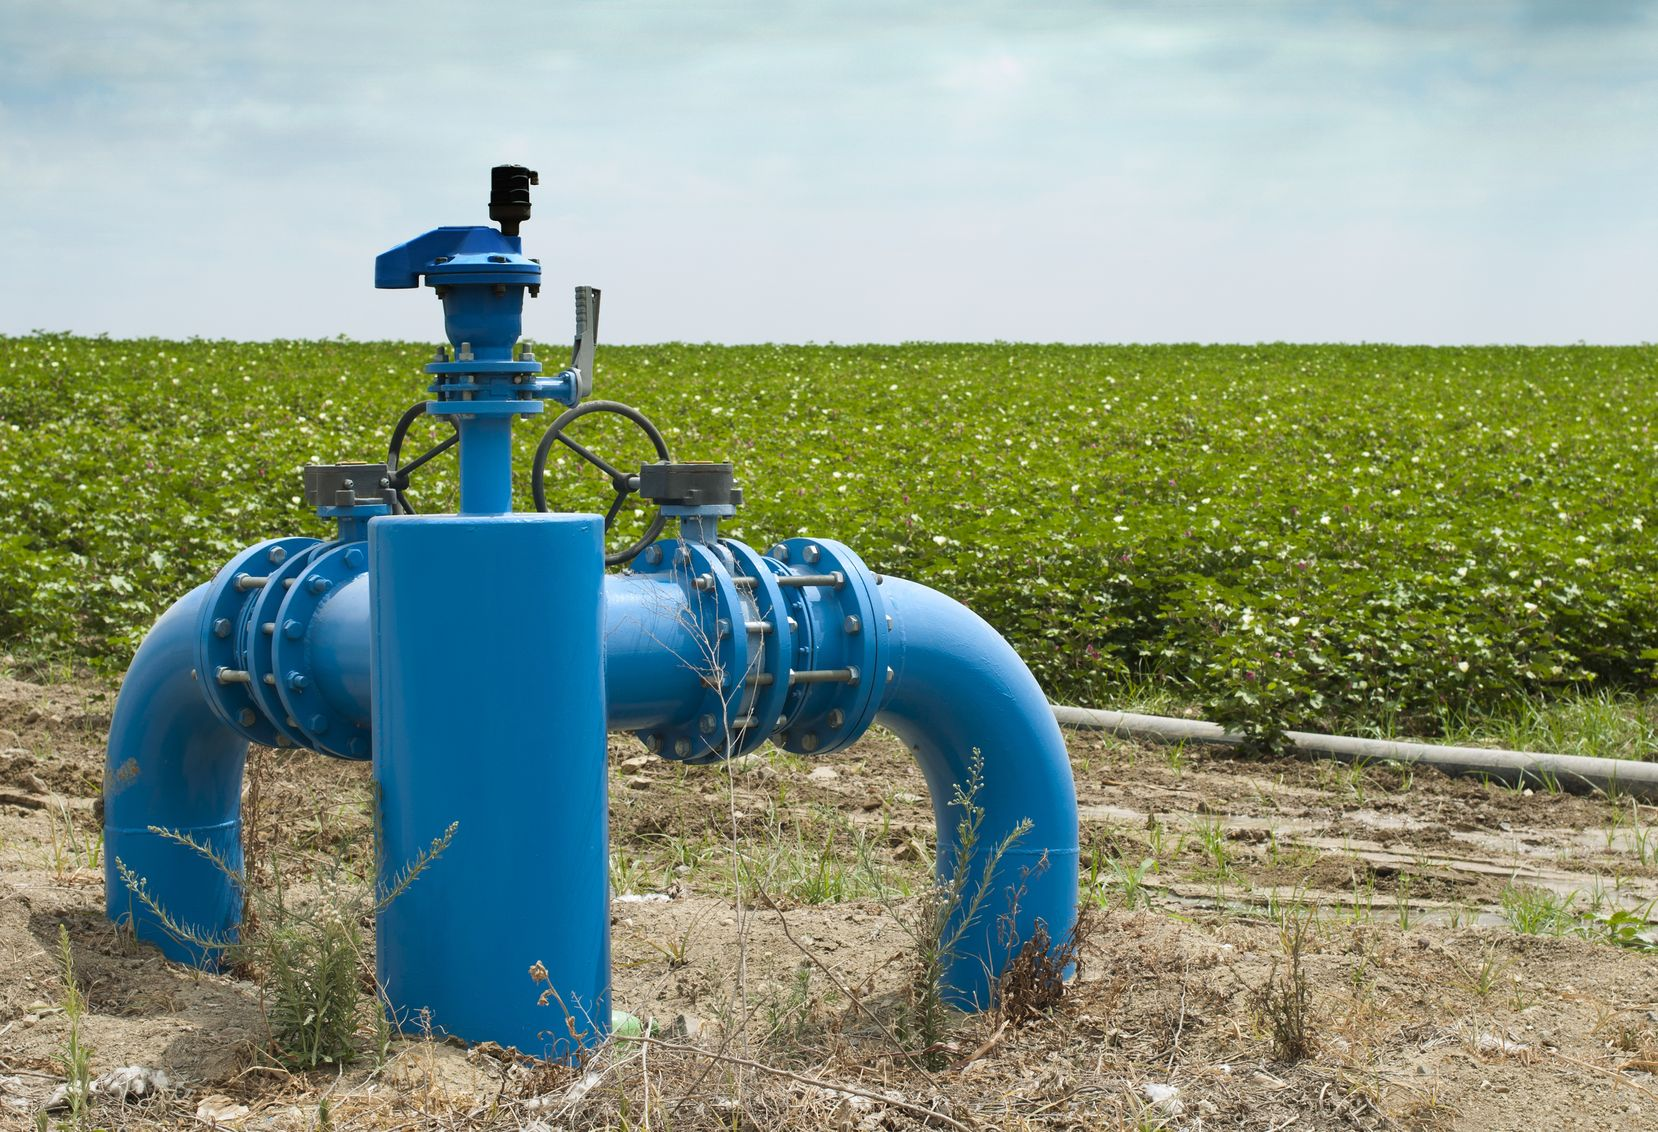 Photo credit: Groundwater Pump, 123rf 14930703